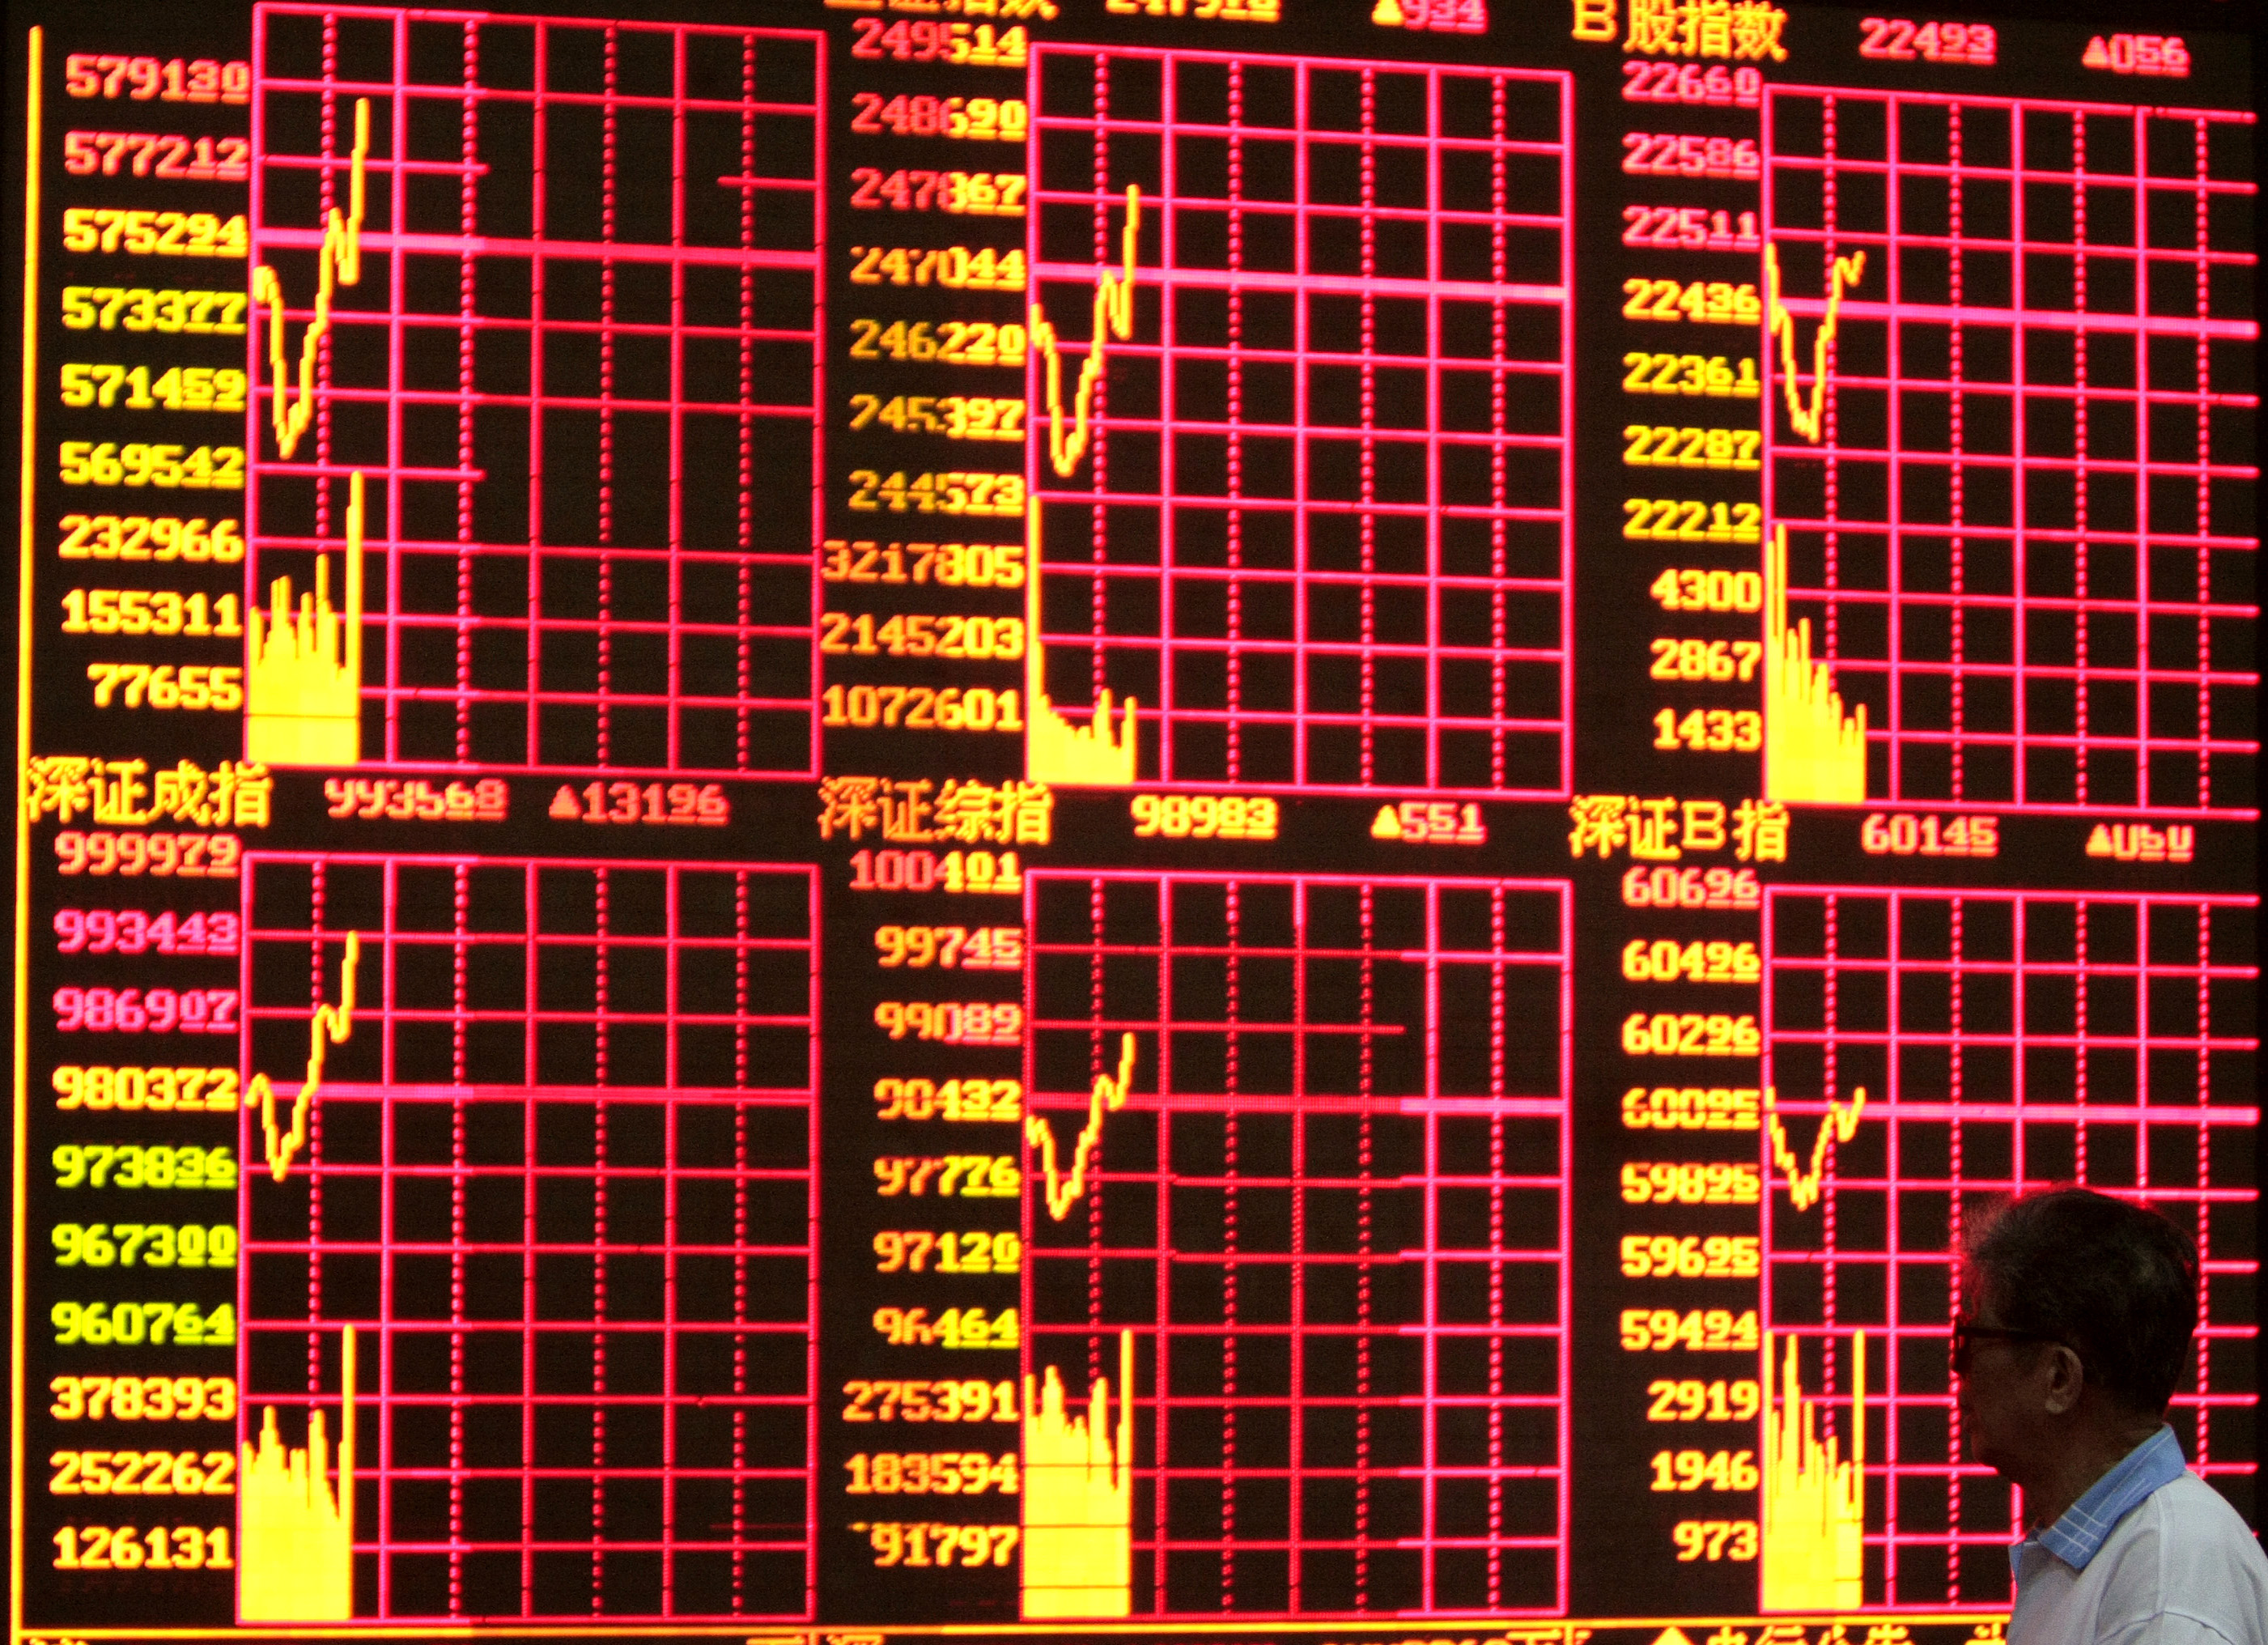 An investor looks at stock quotes at a securities trading firm in Shanghai, China yesterday. China's stocks dropped, led by commodity producers, after...